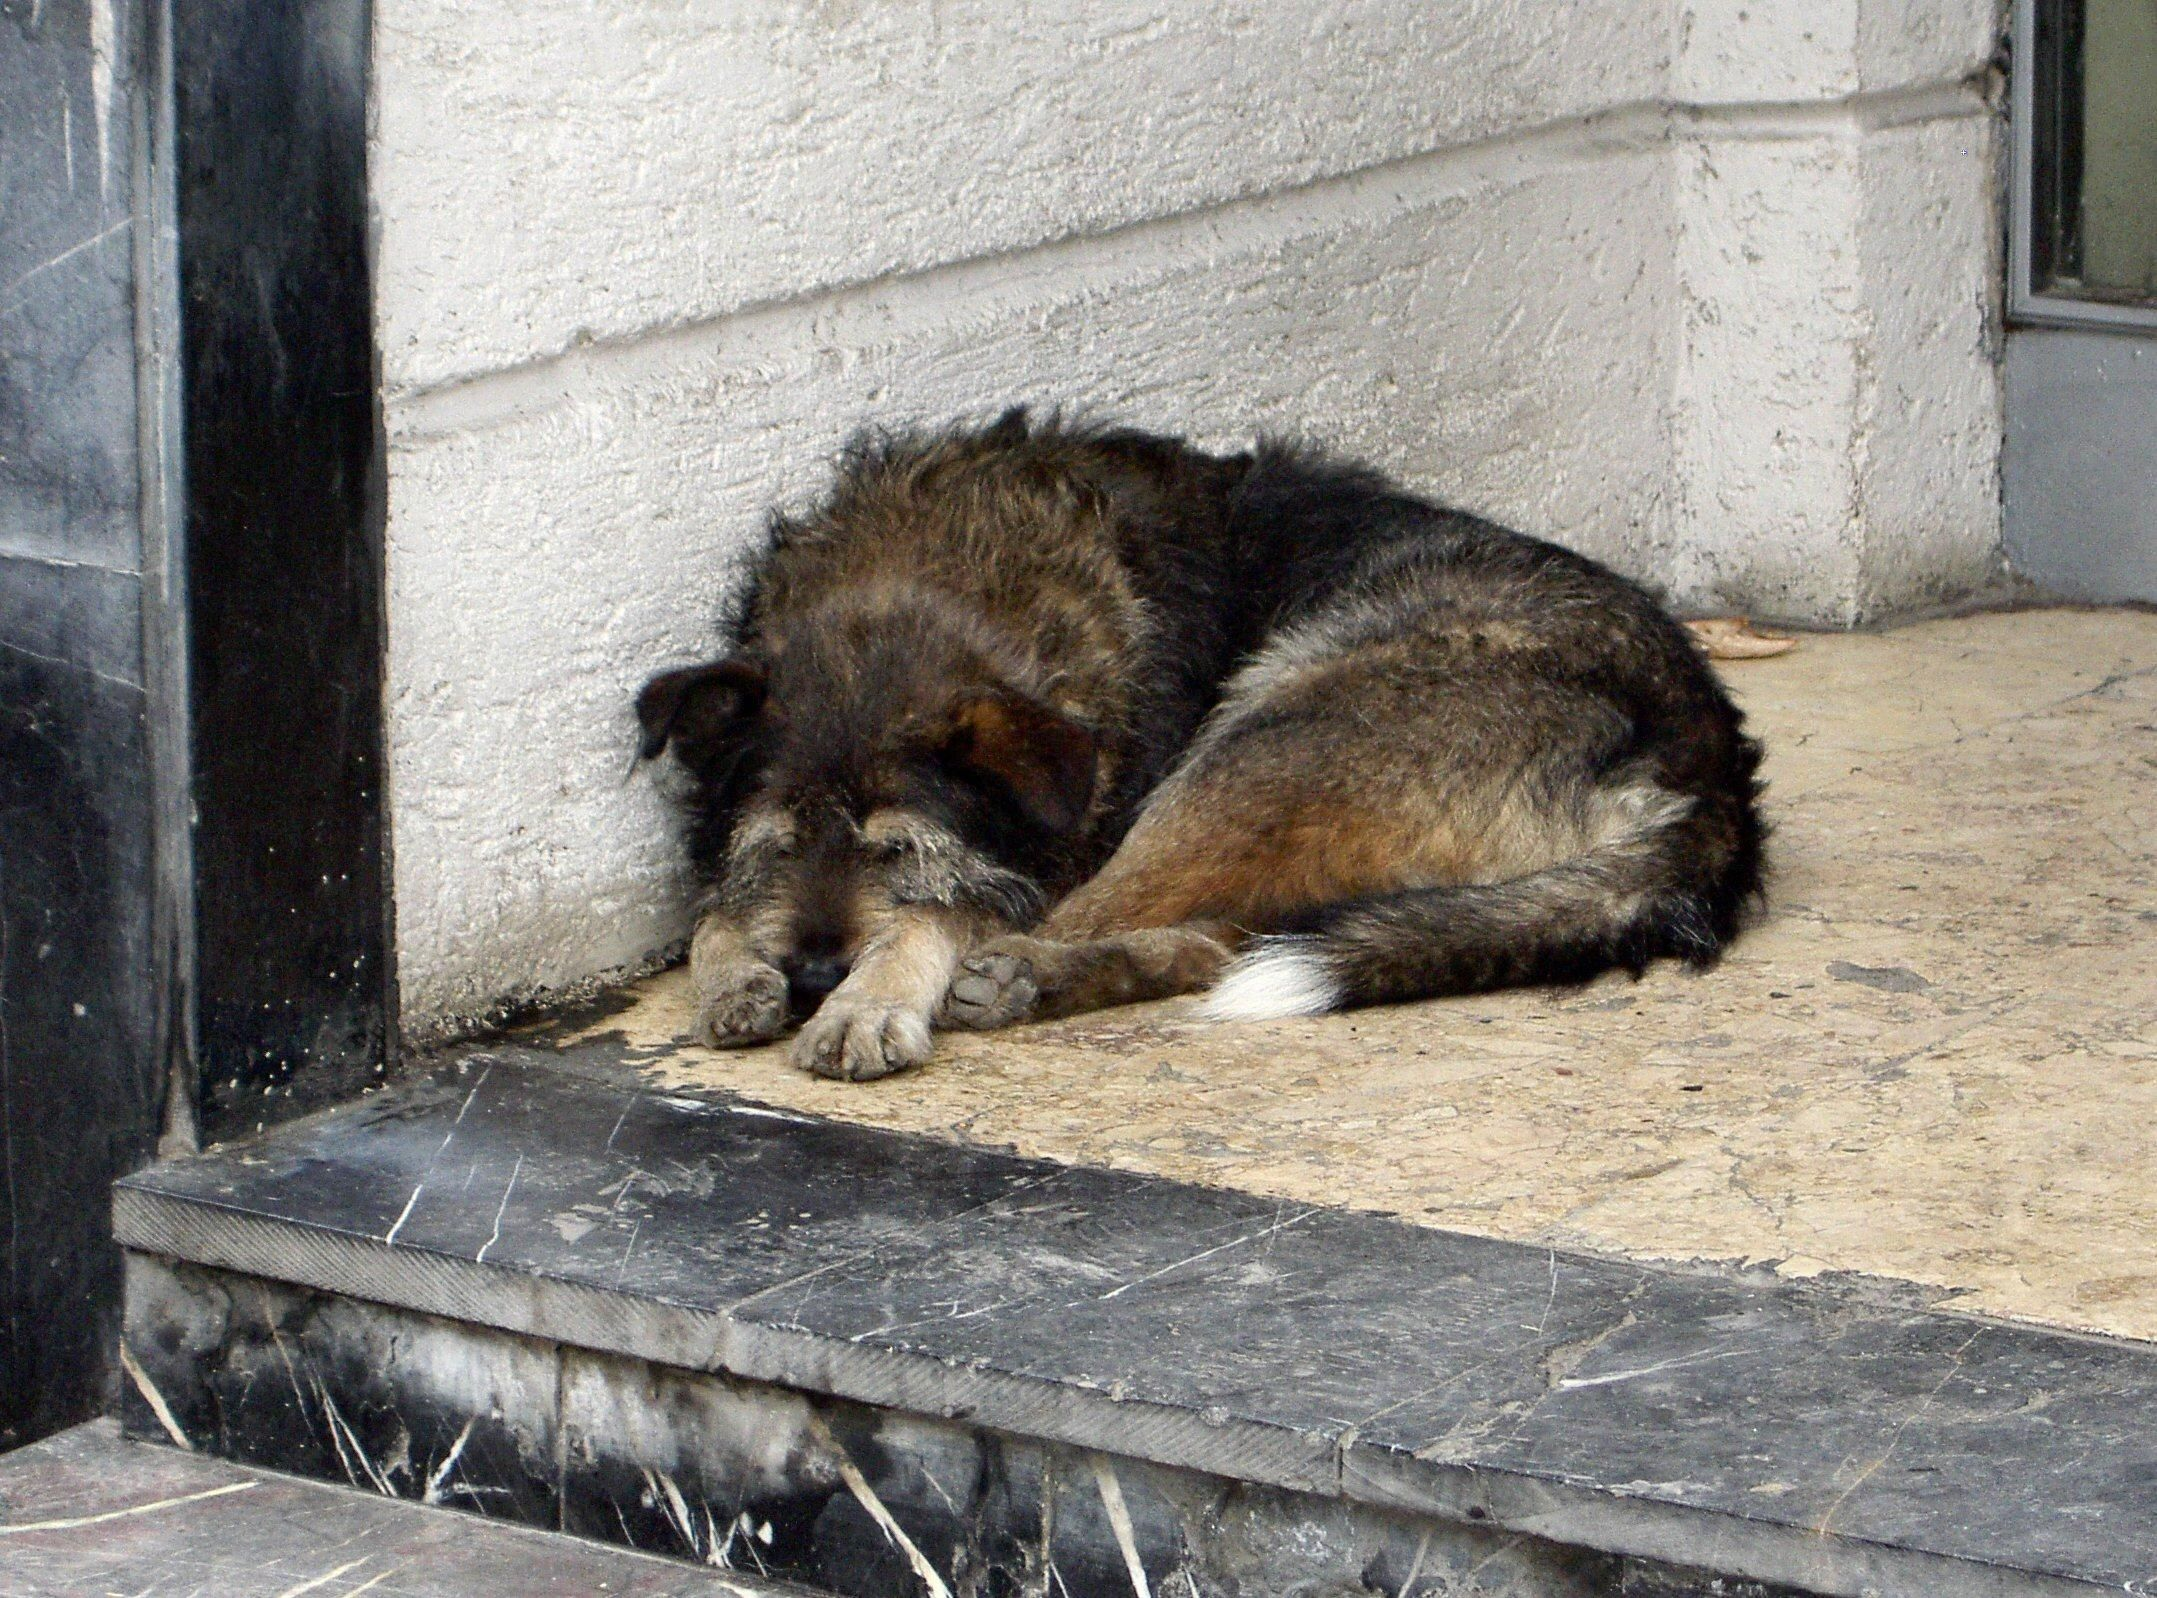 please don't forget about the homeless dogs